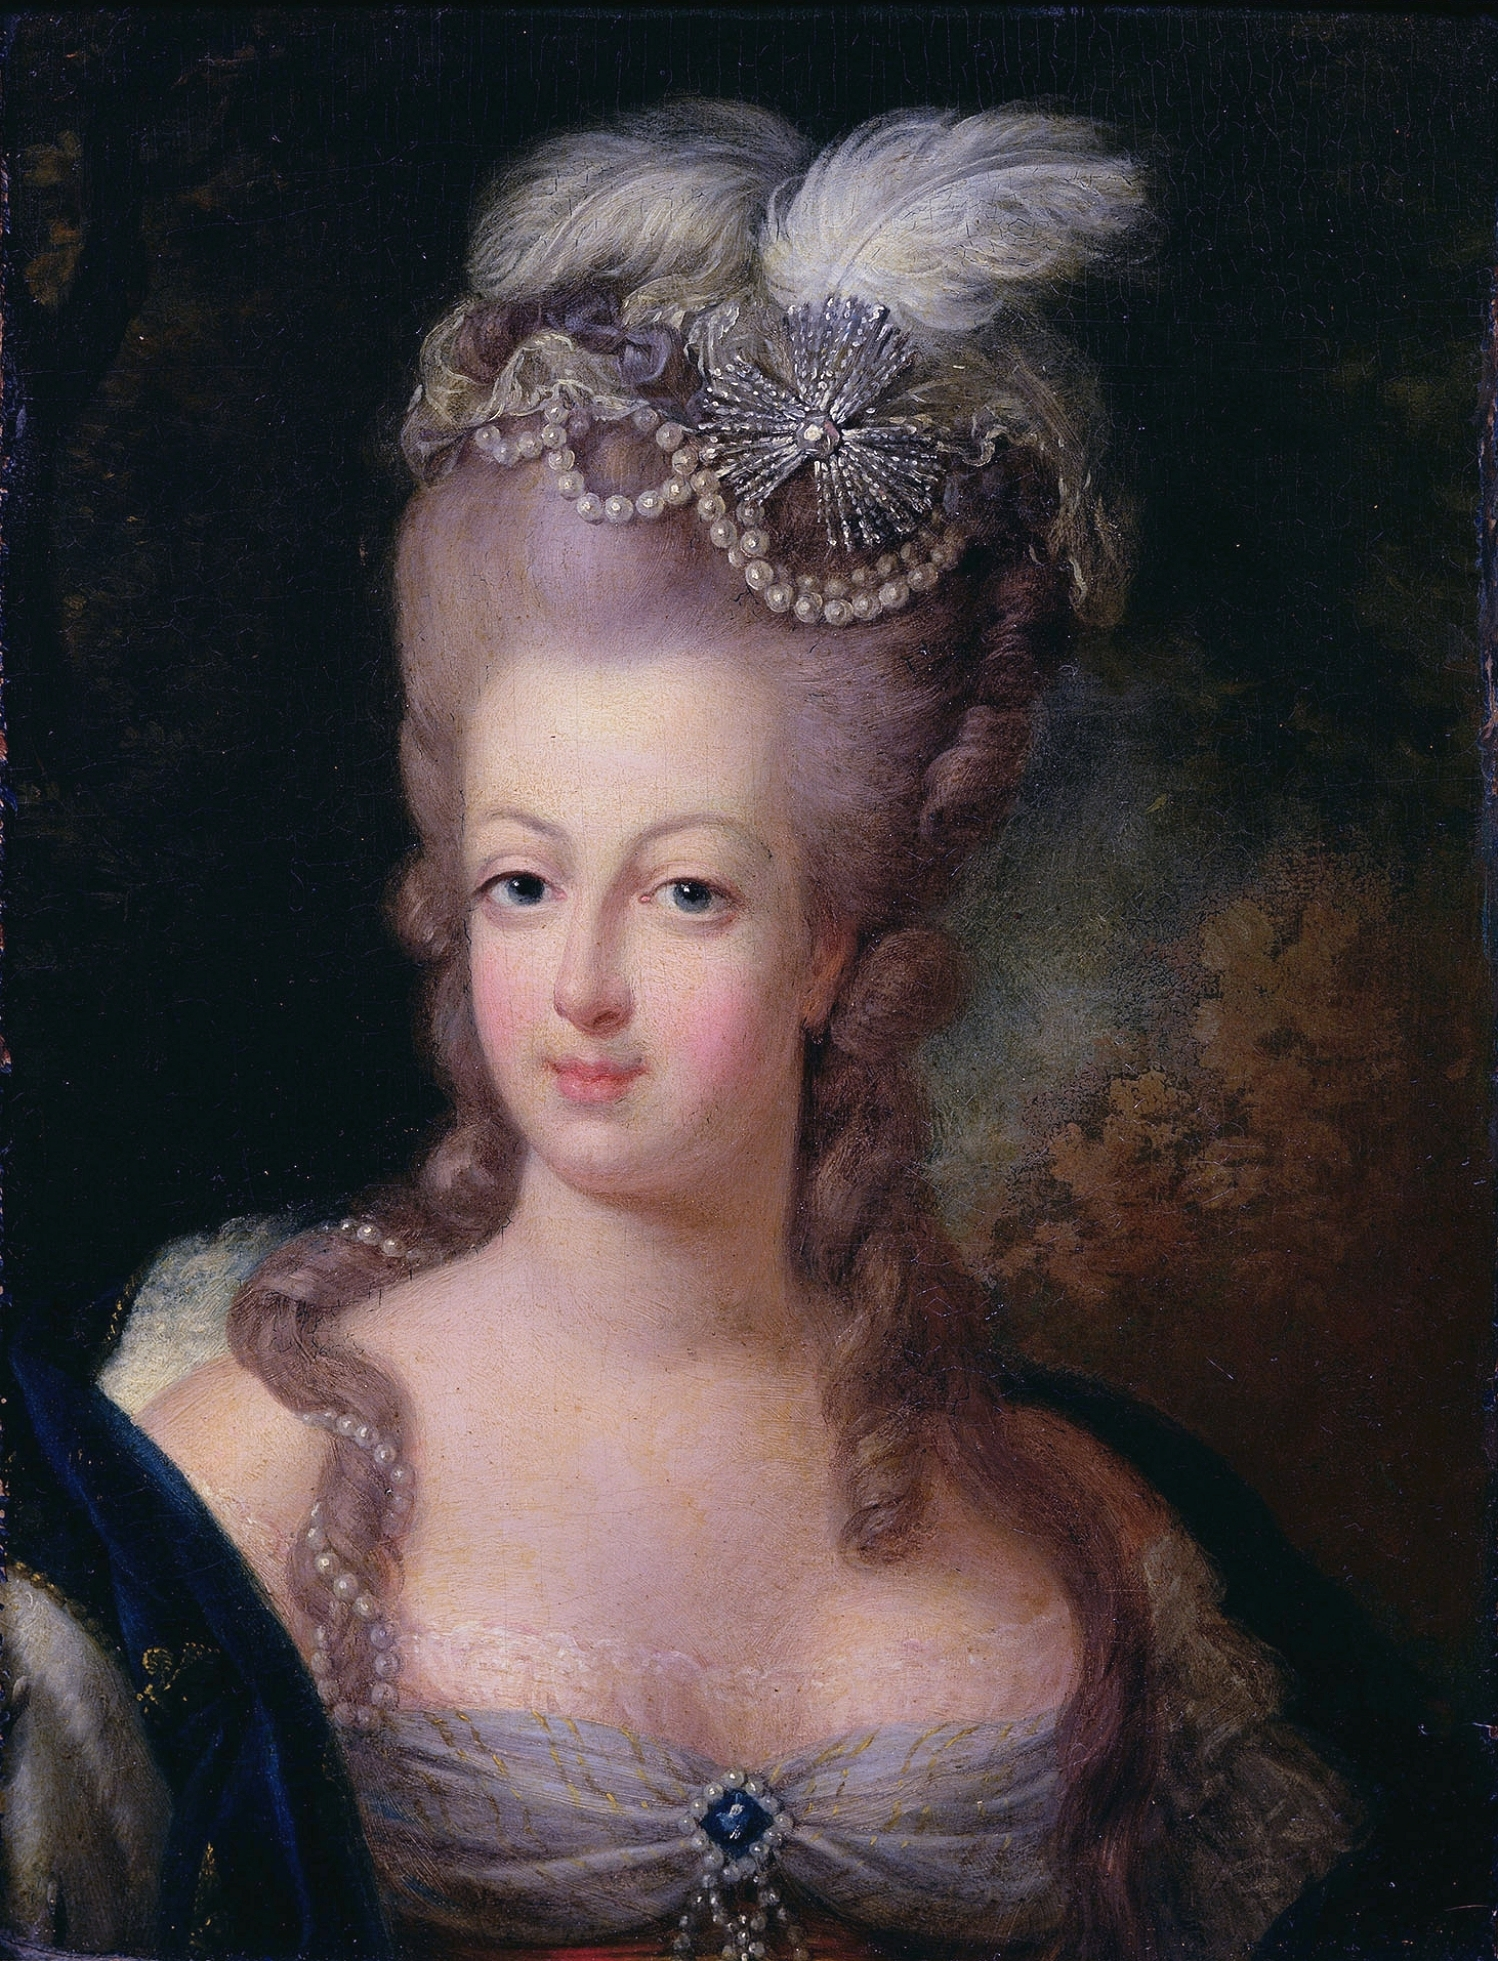 Marie Antoinette Net Worth